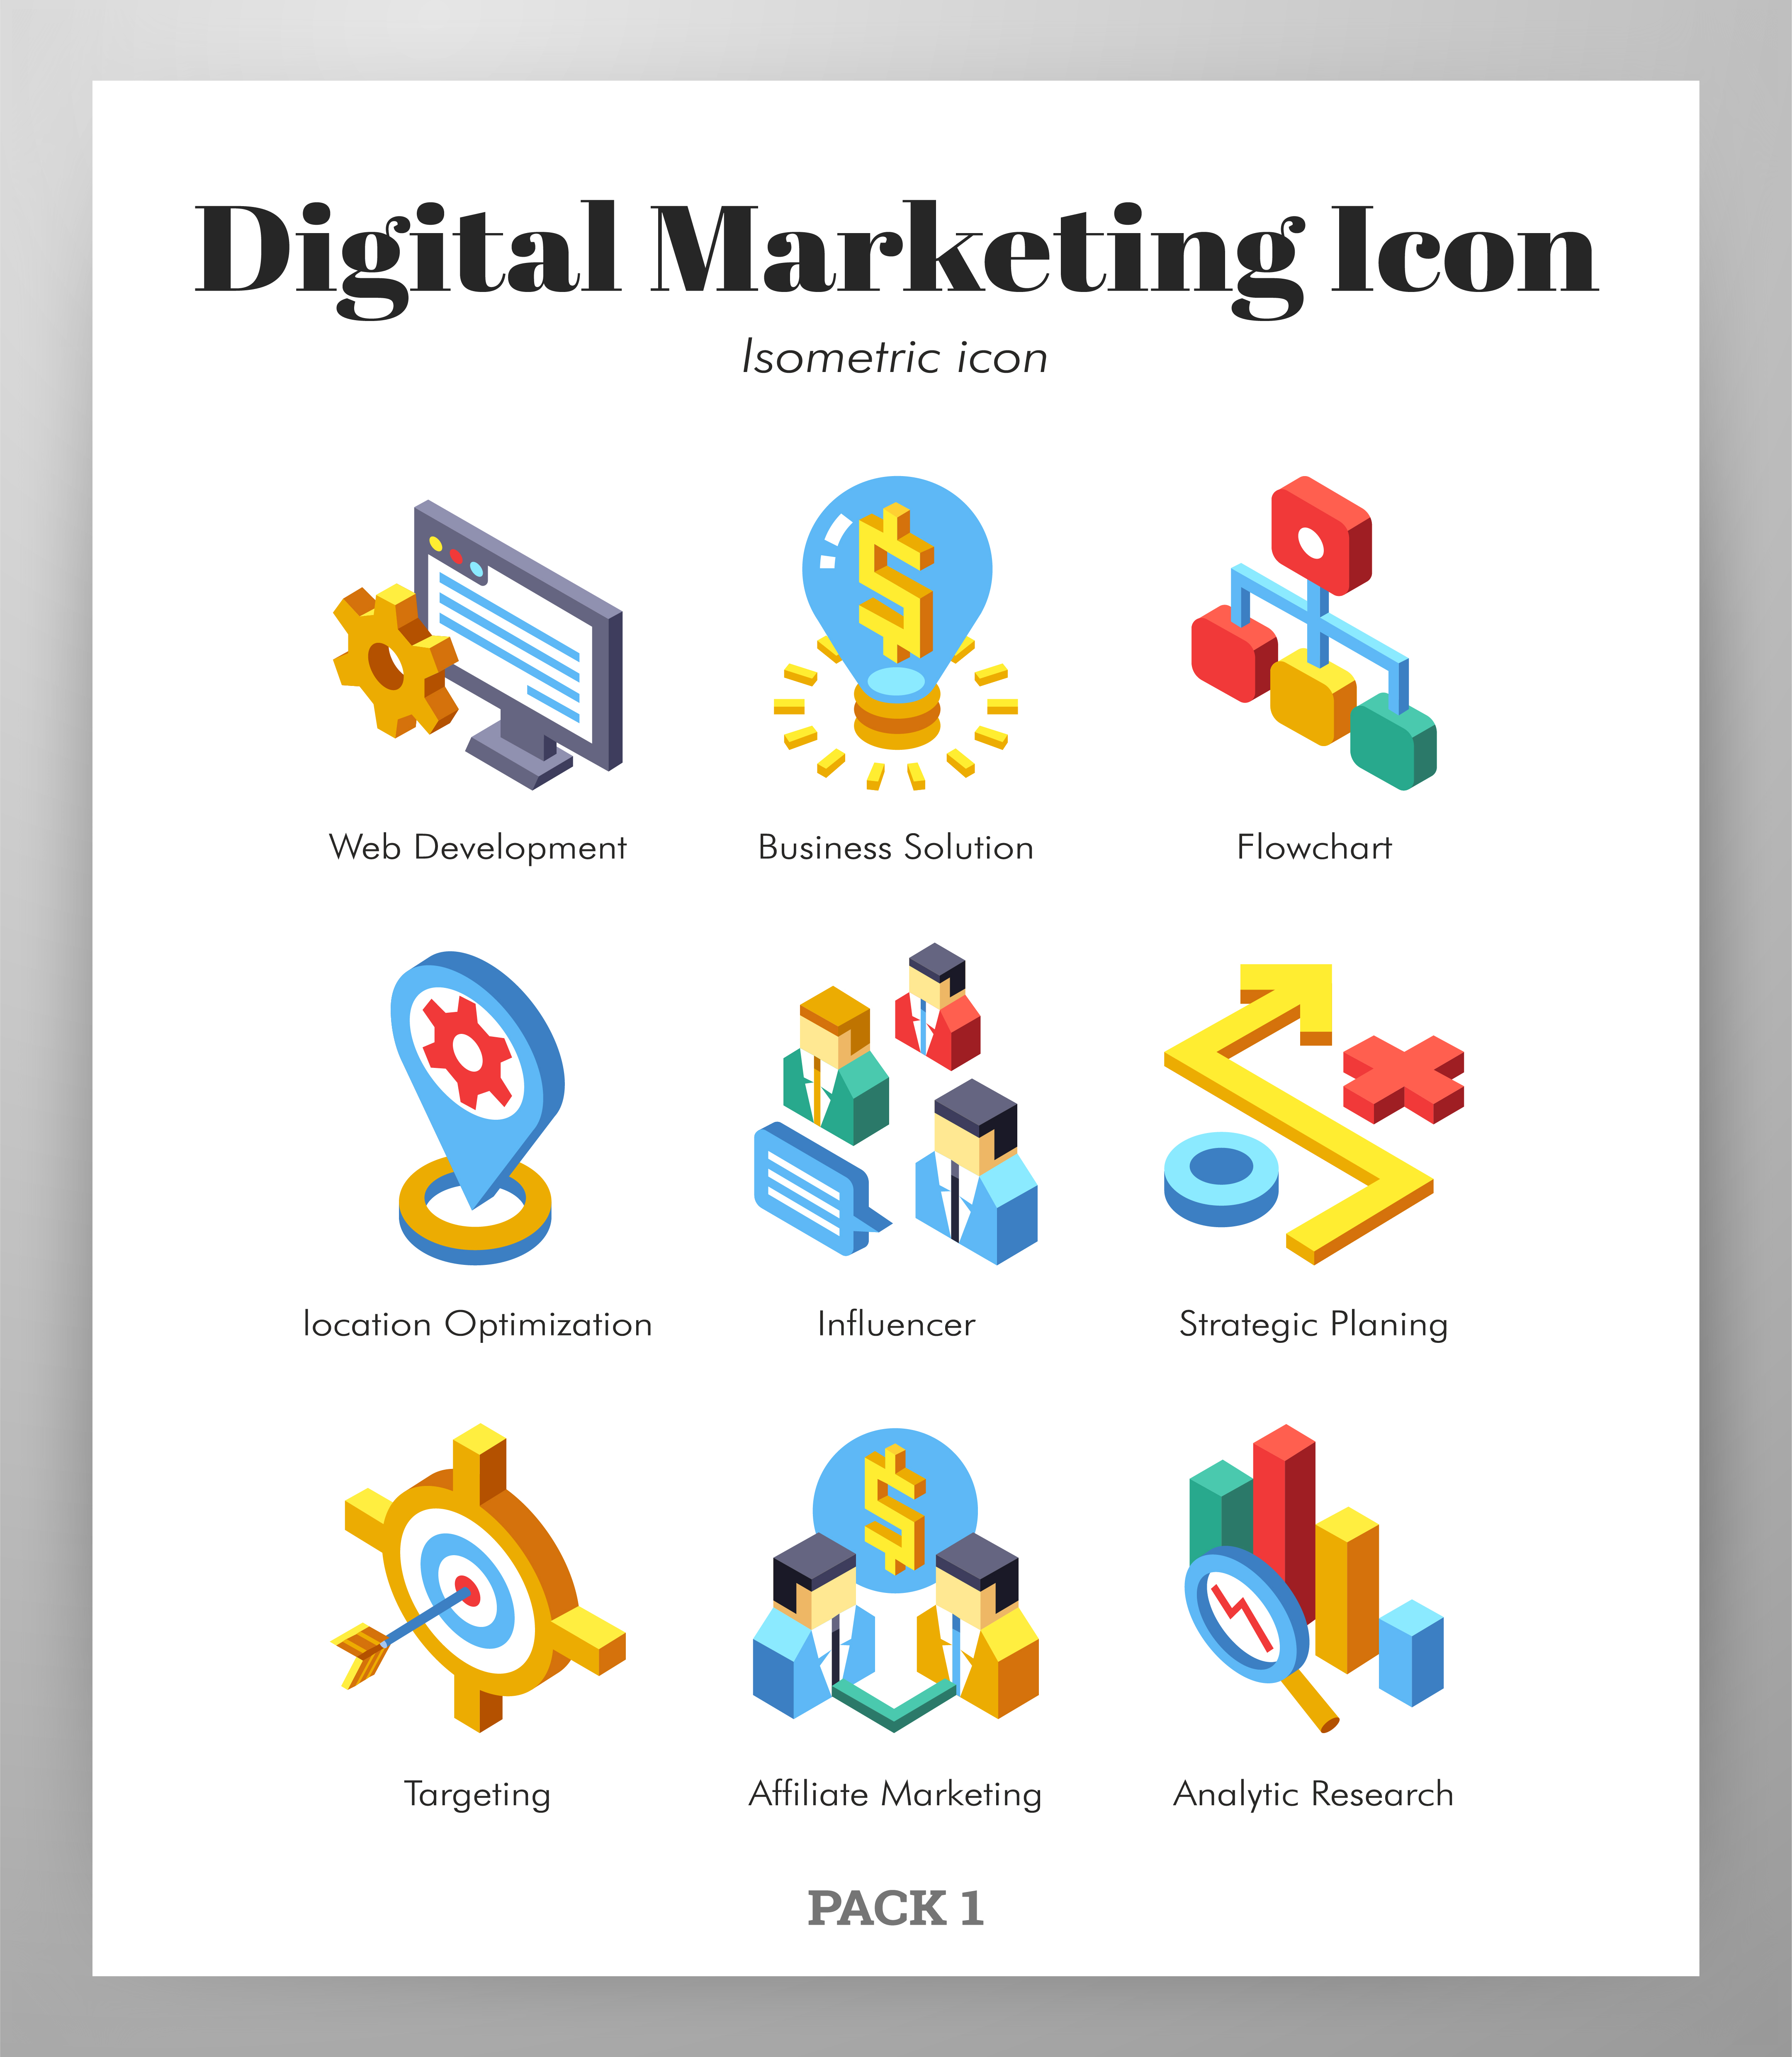 Digital marketing icons Isometic pack - Download Free ...